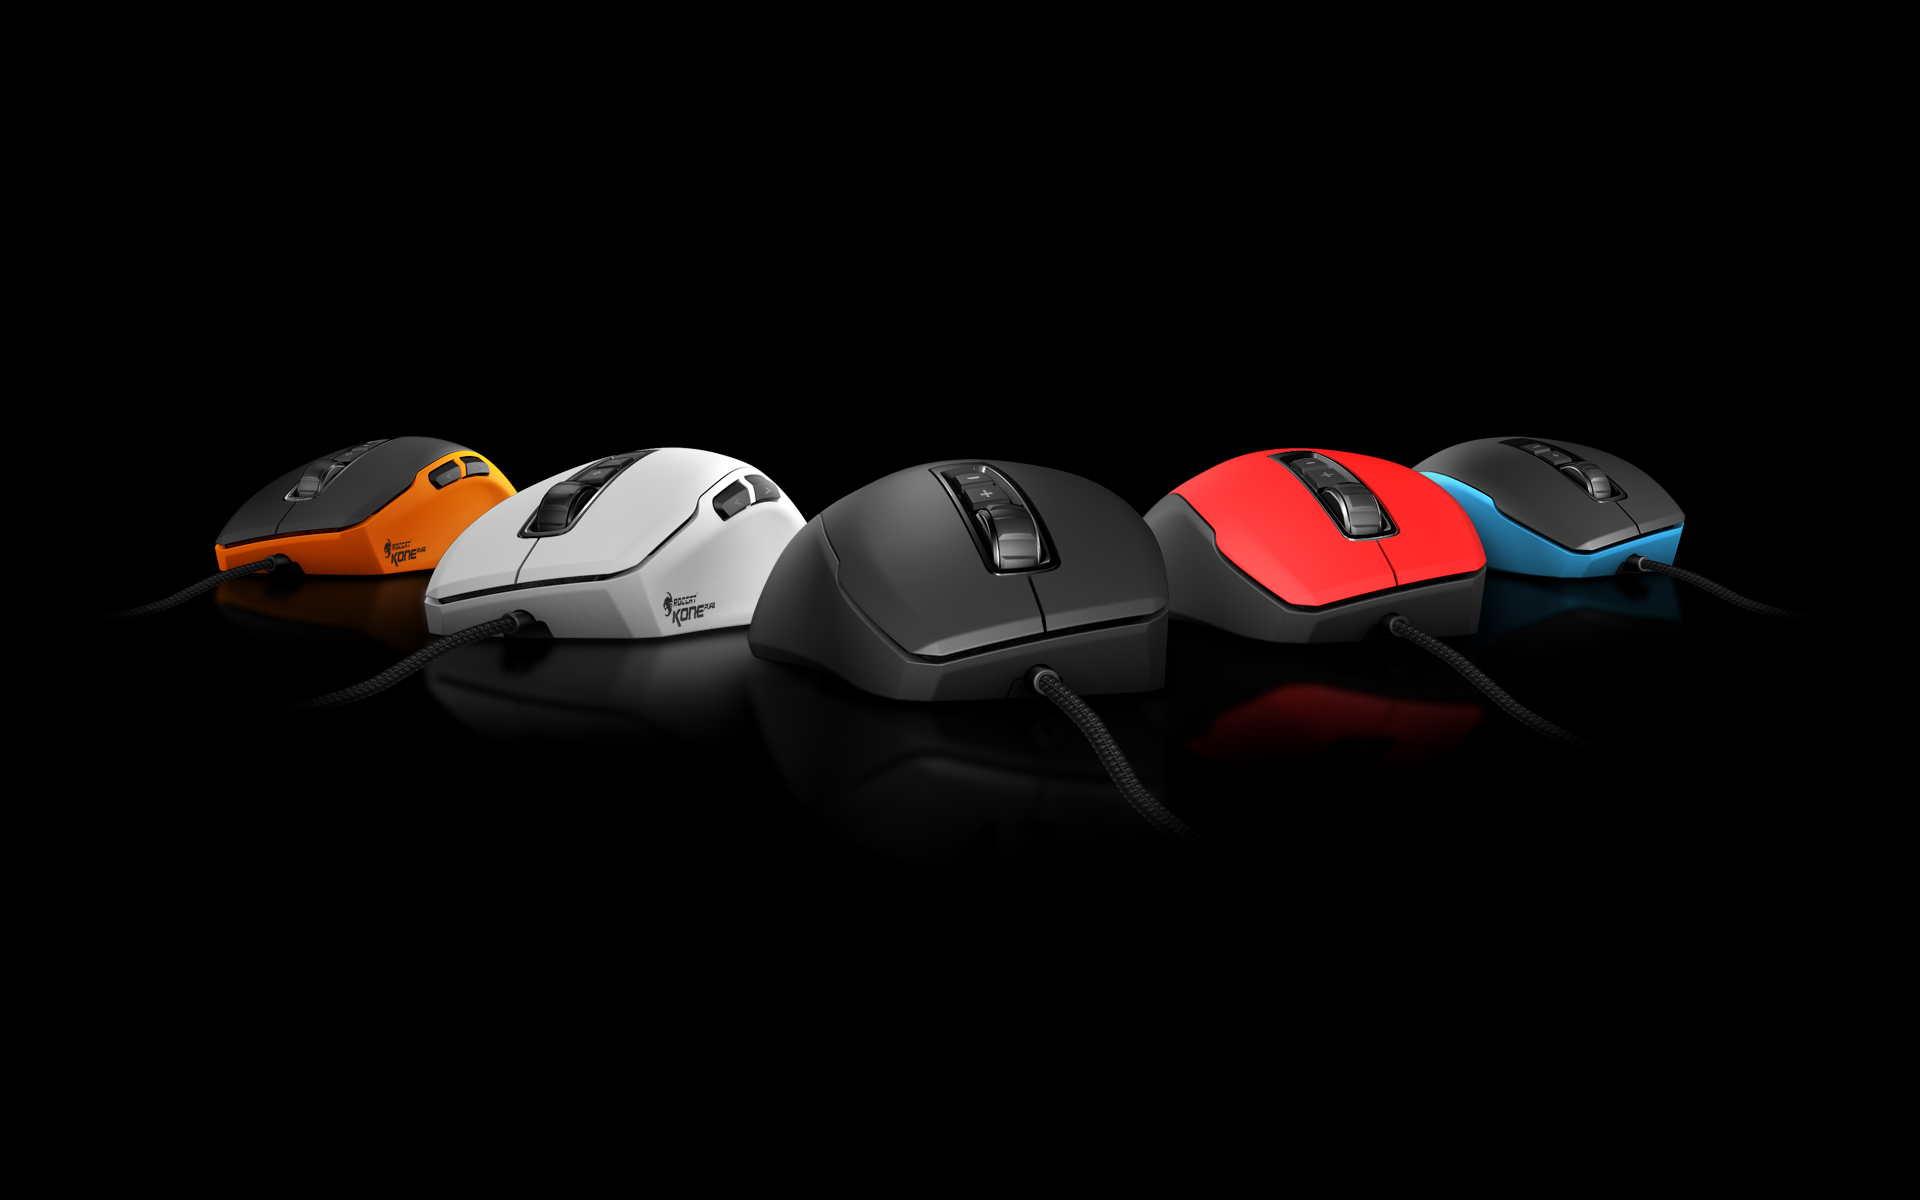 ROCCAT-Kone_Pure_collection_1920x1200.jpg